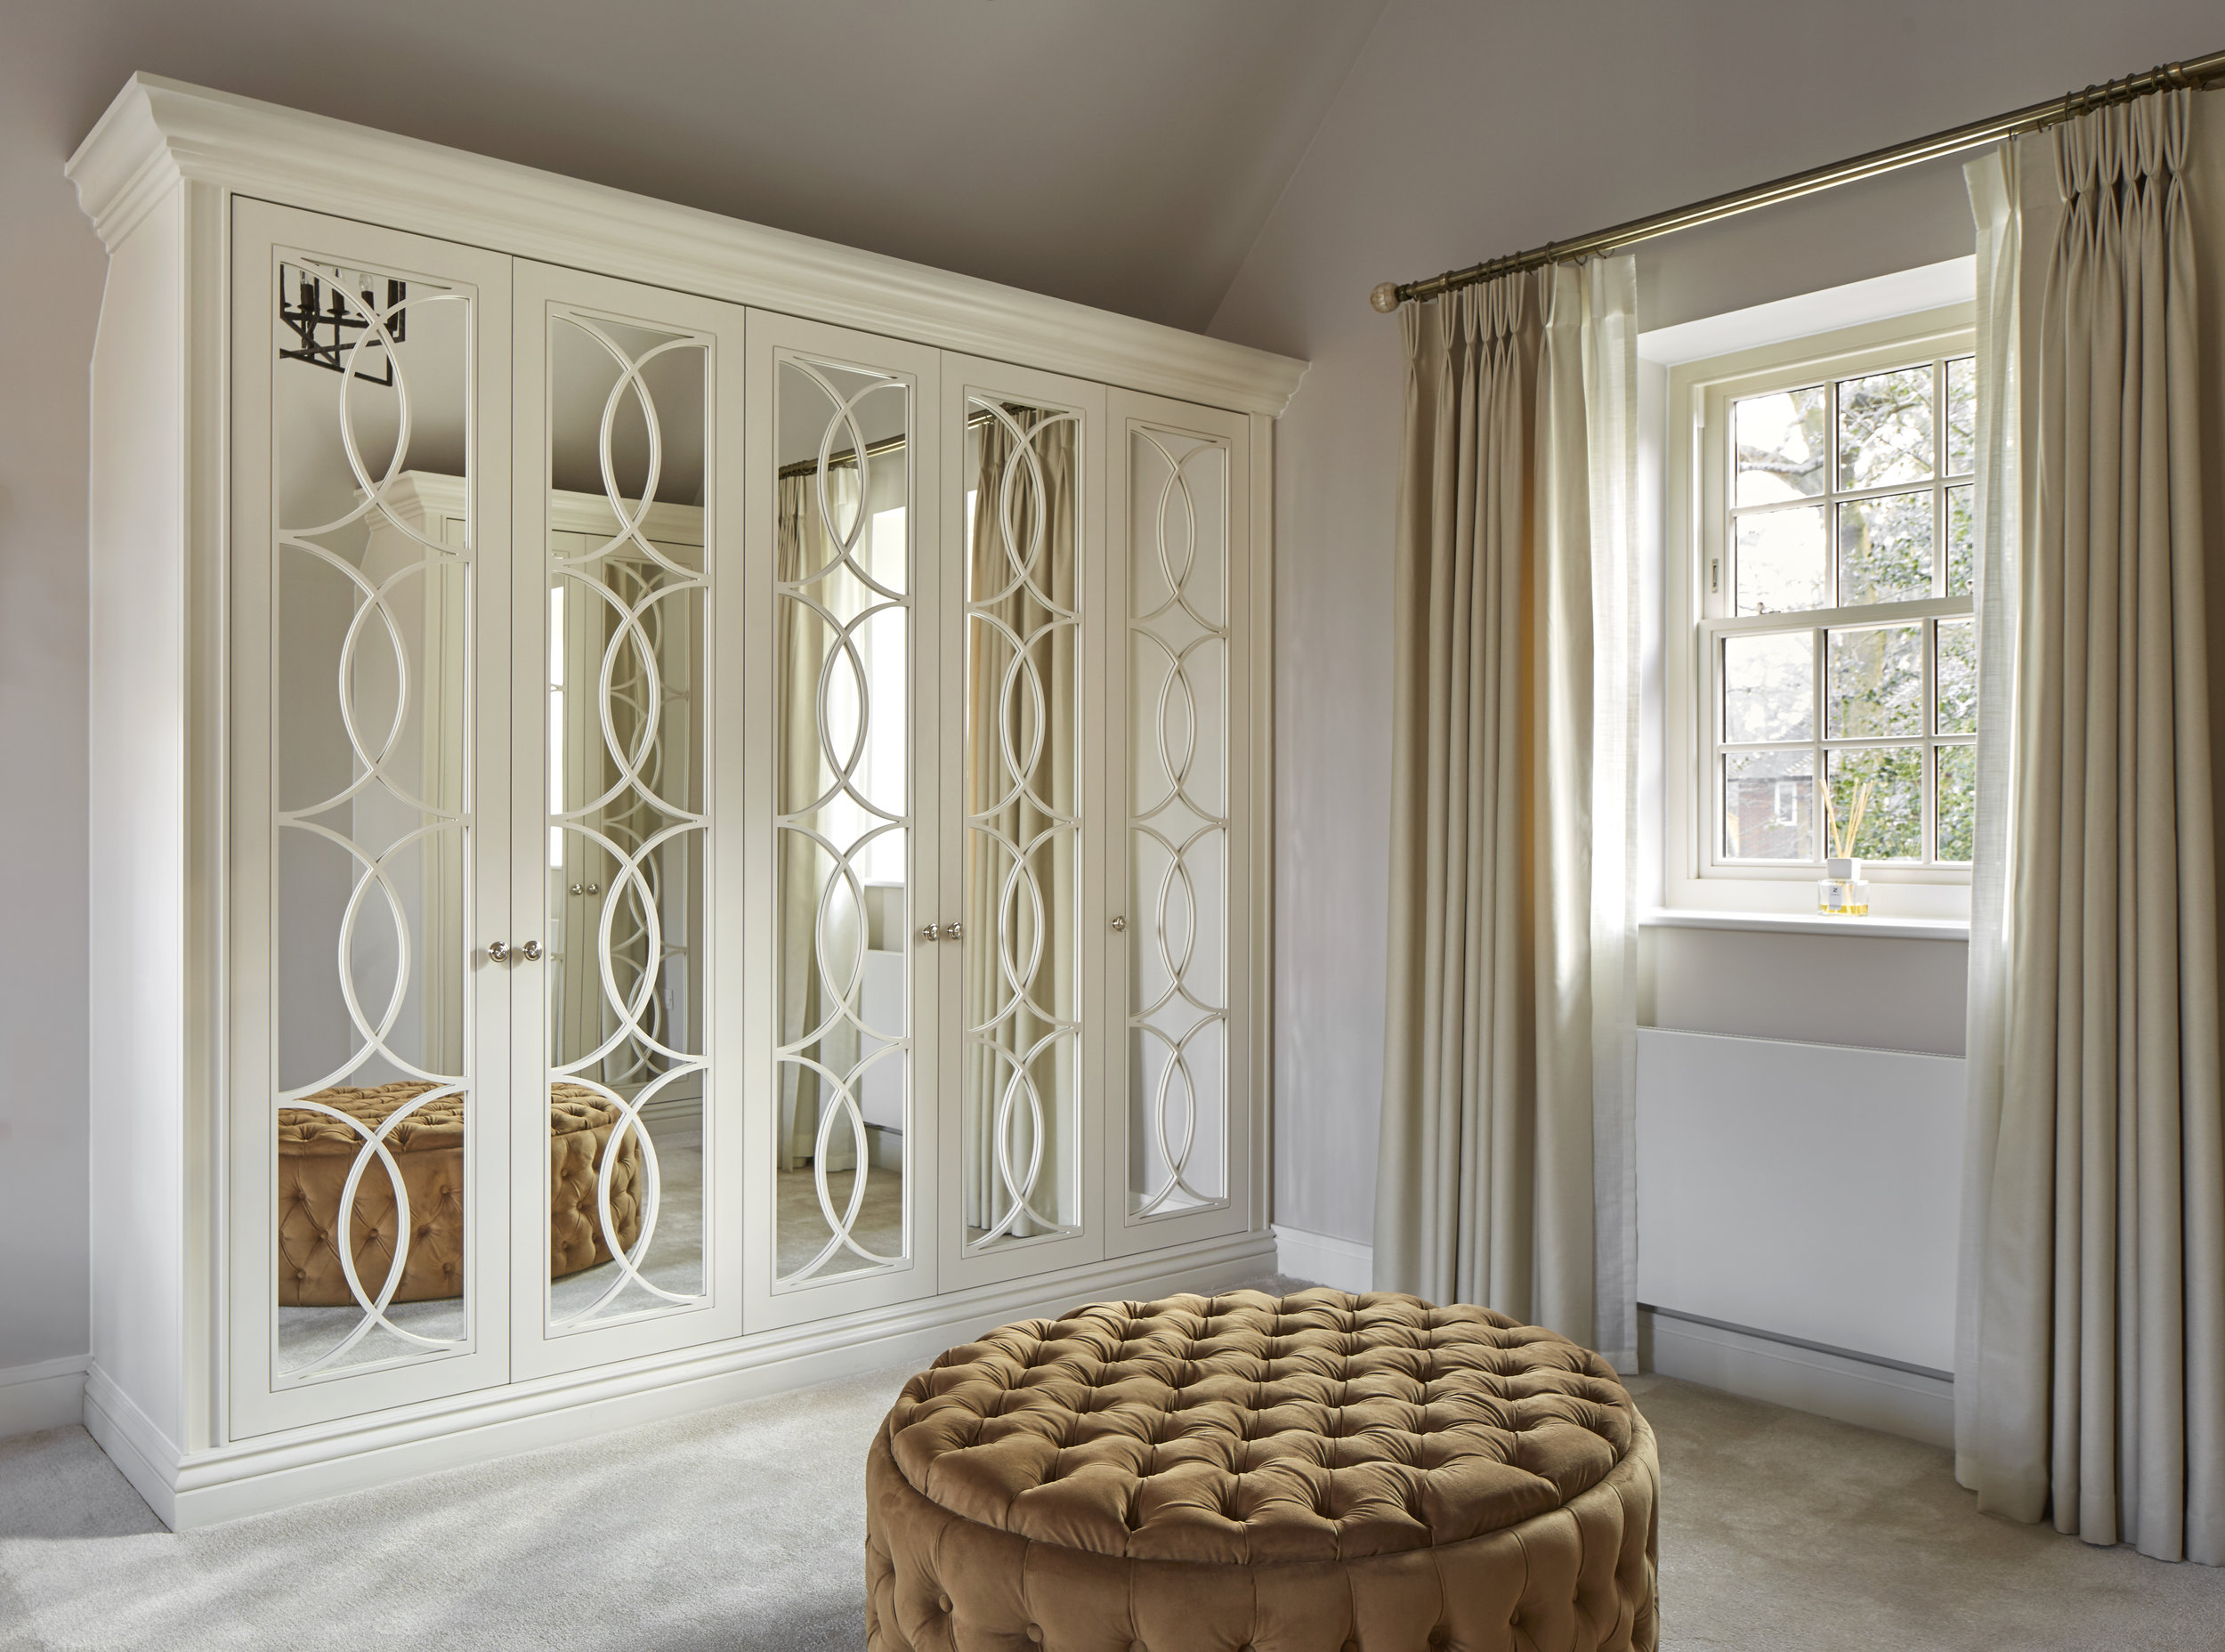 E Luxury Fitted Wardrobes - Empire Style - The Heritage Wardrobe Company.jpg